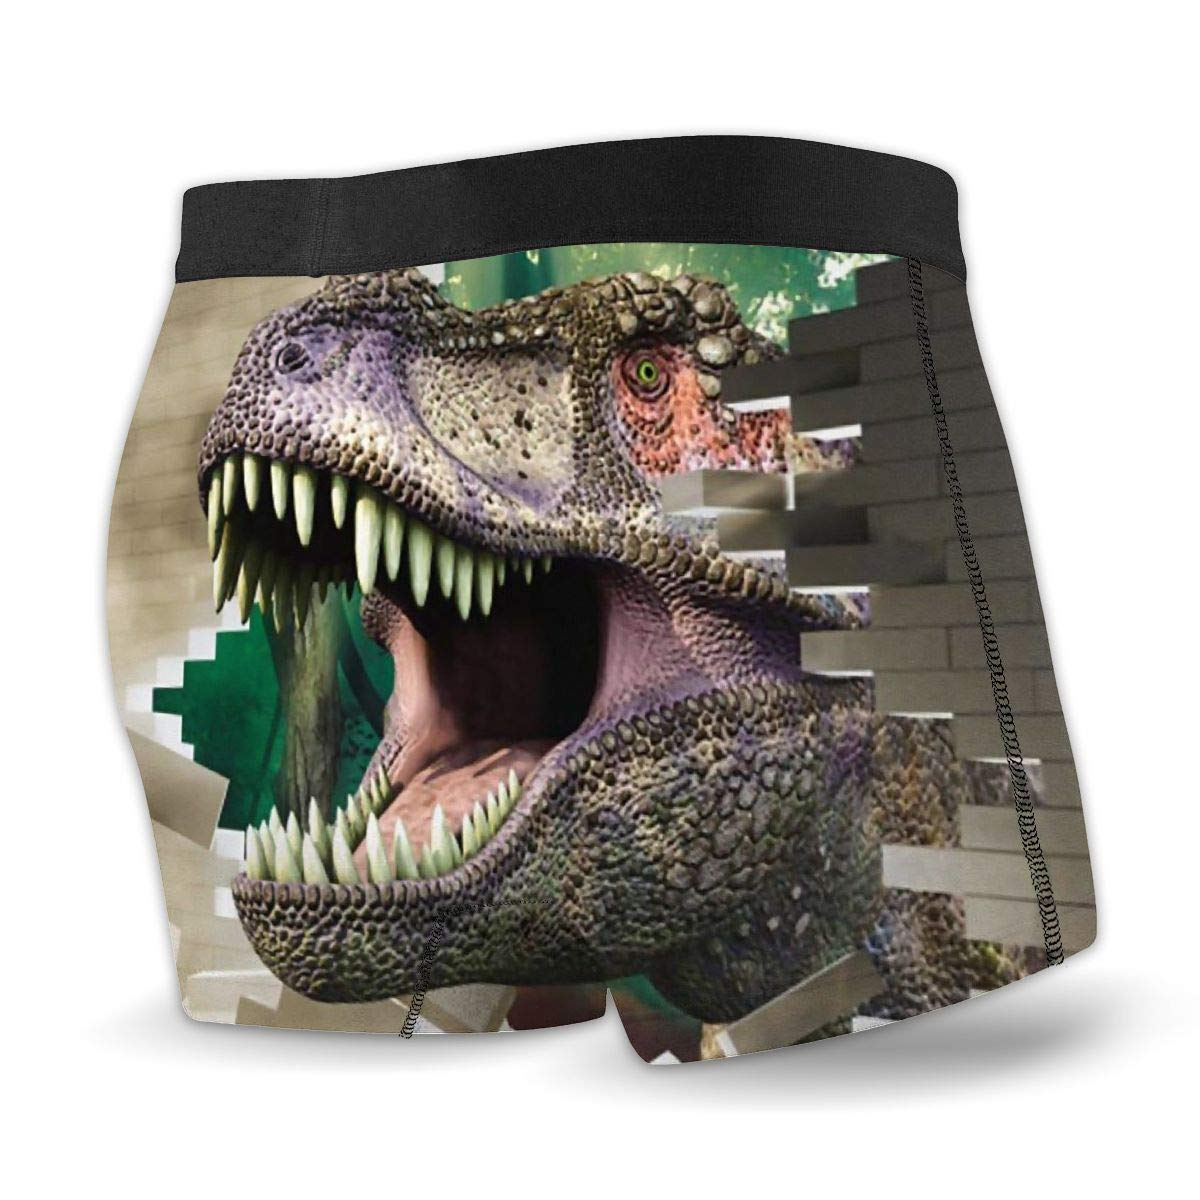 JHSDJH Dinosaur 浜?Boxer Briefs 3D-Printed Mens Casual Underwear Breathable for Sport Erotic